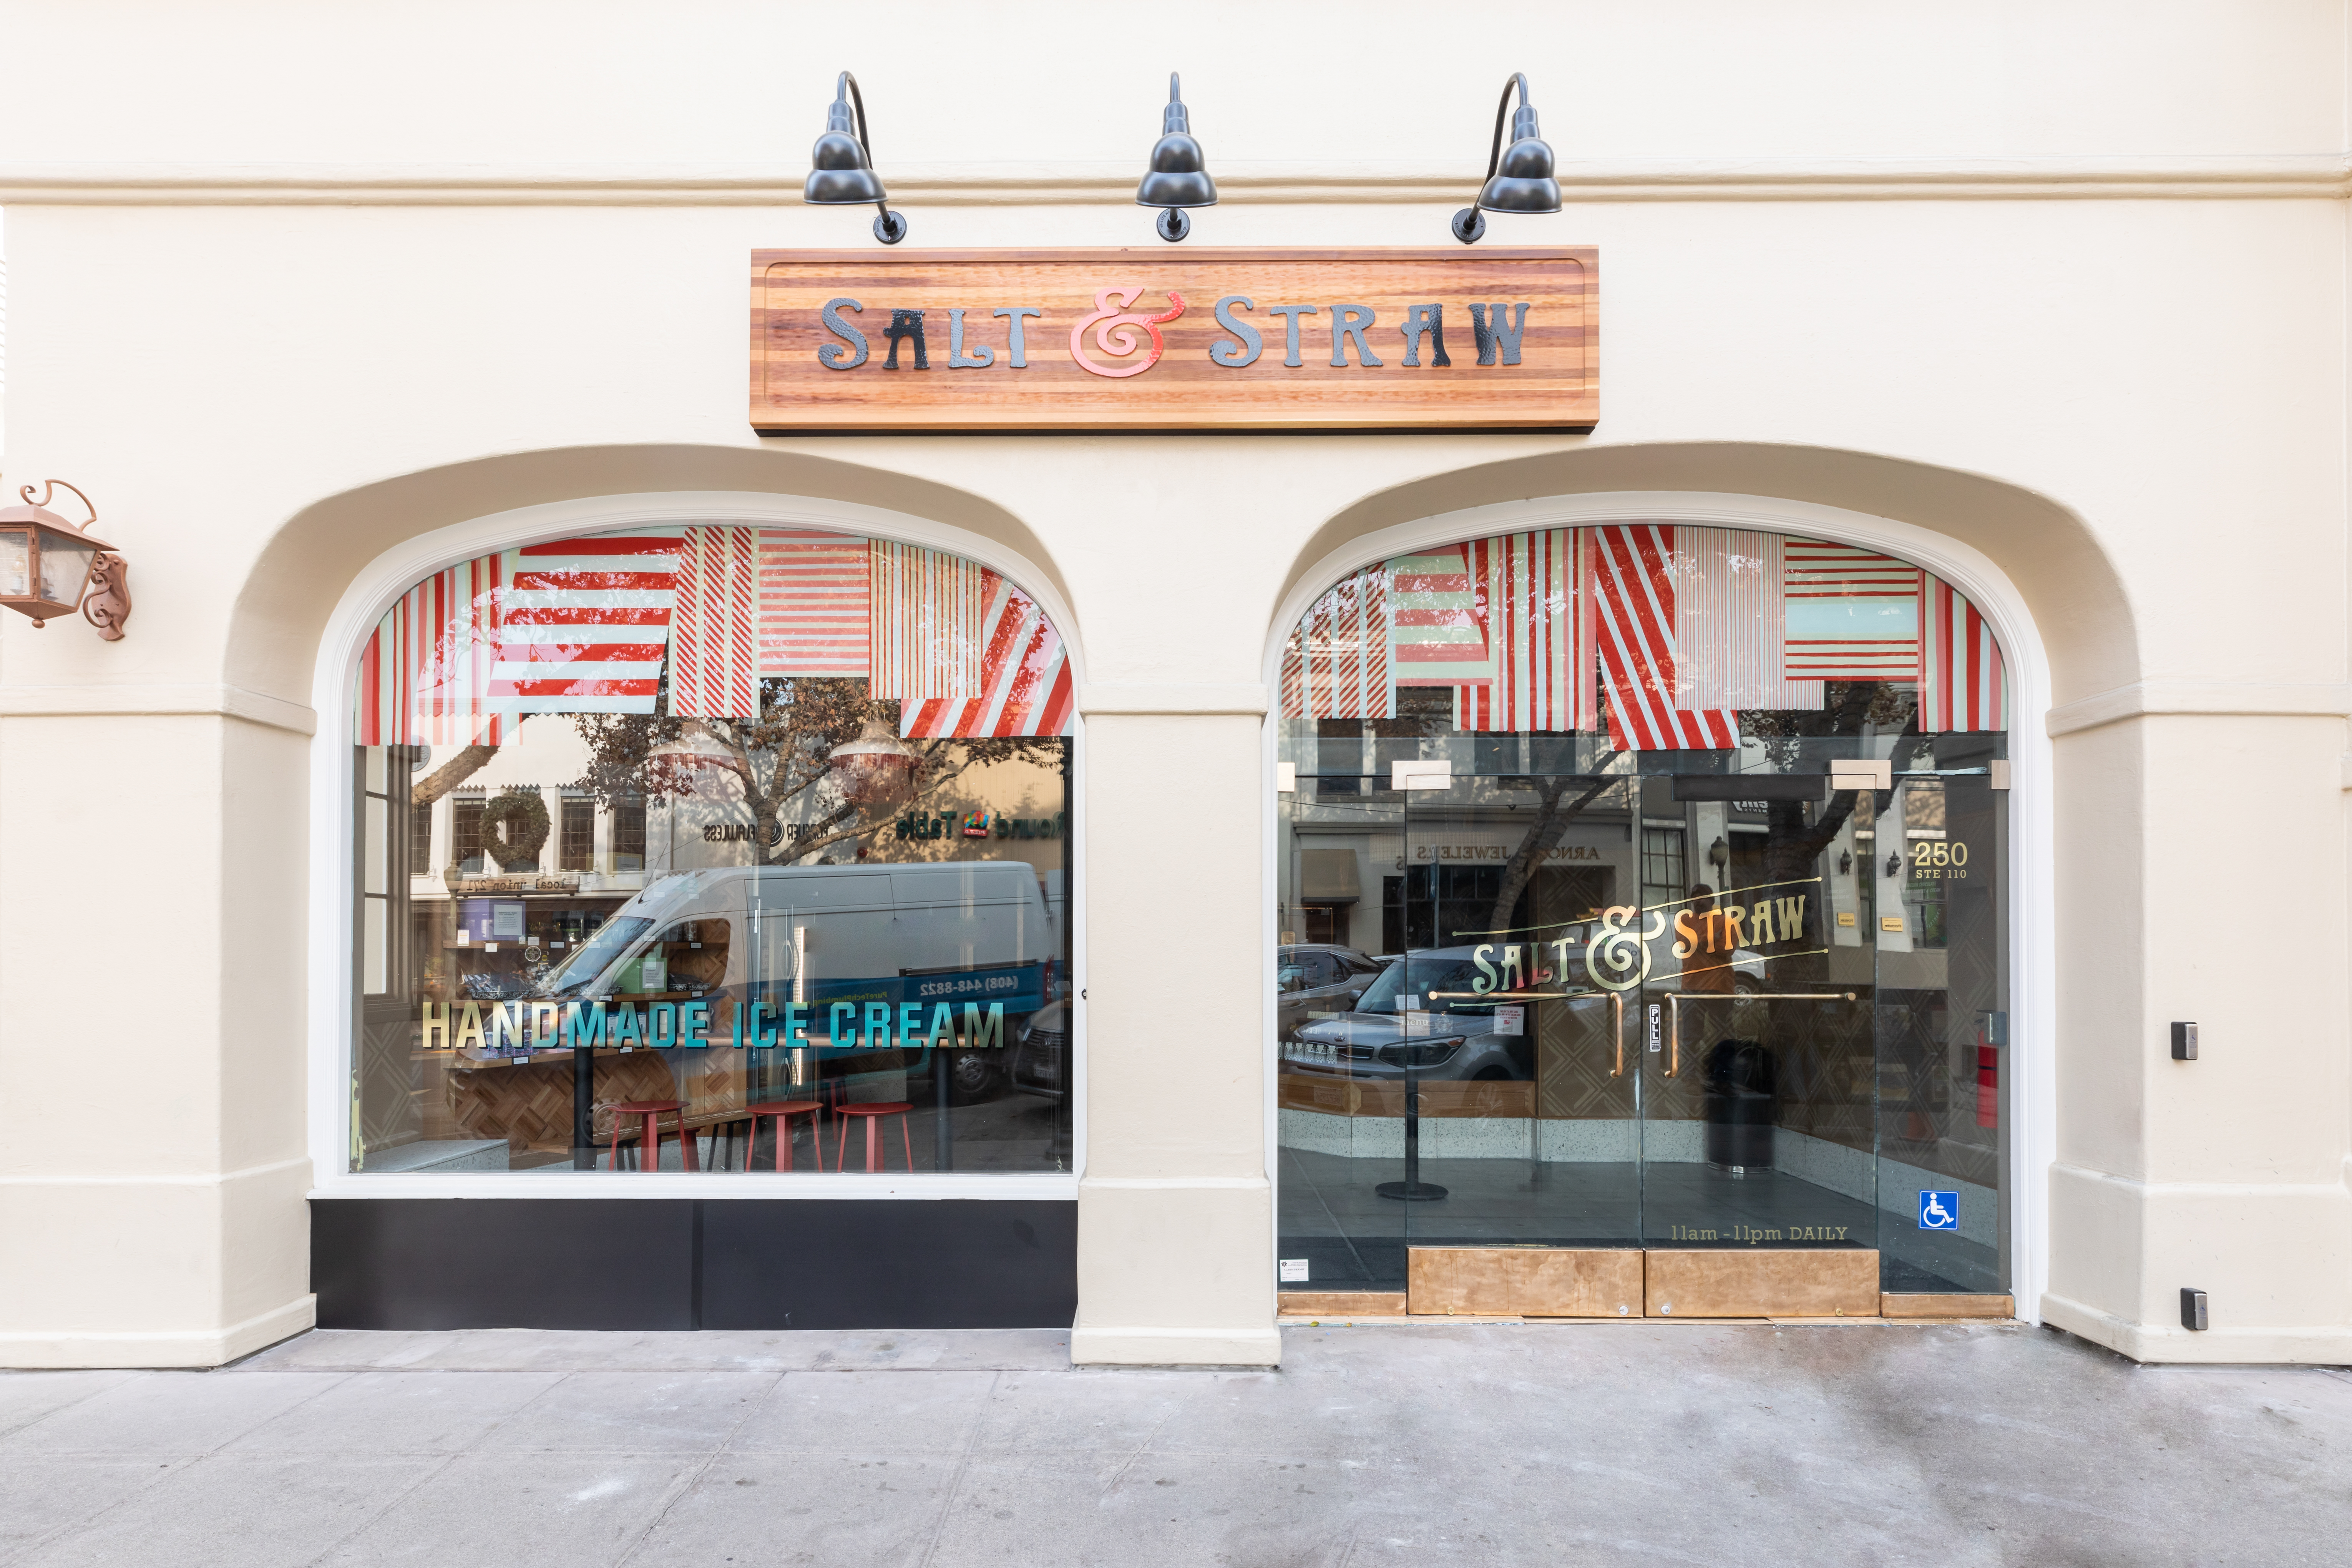 Salt & Straw Arrives in Palo Alto With Eclectic Holiday Ice Cream Flavors